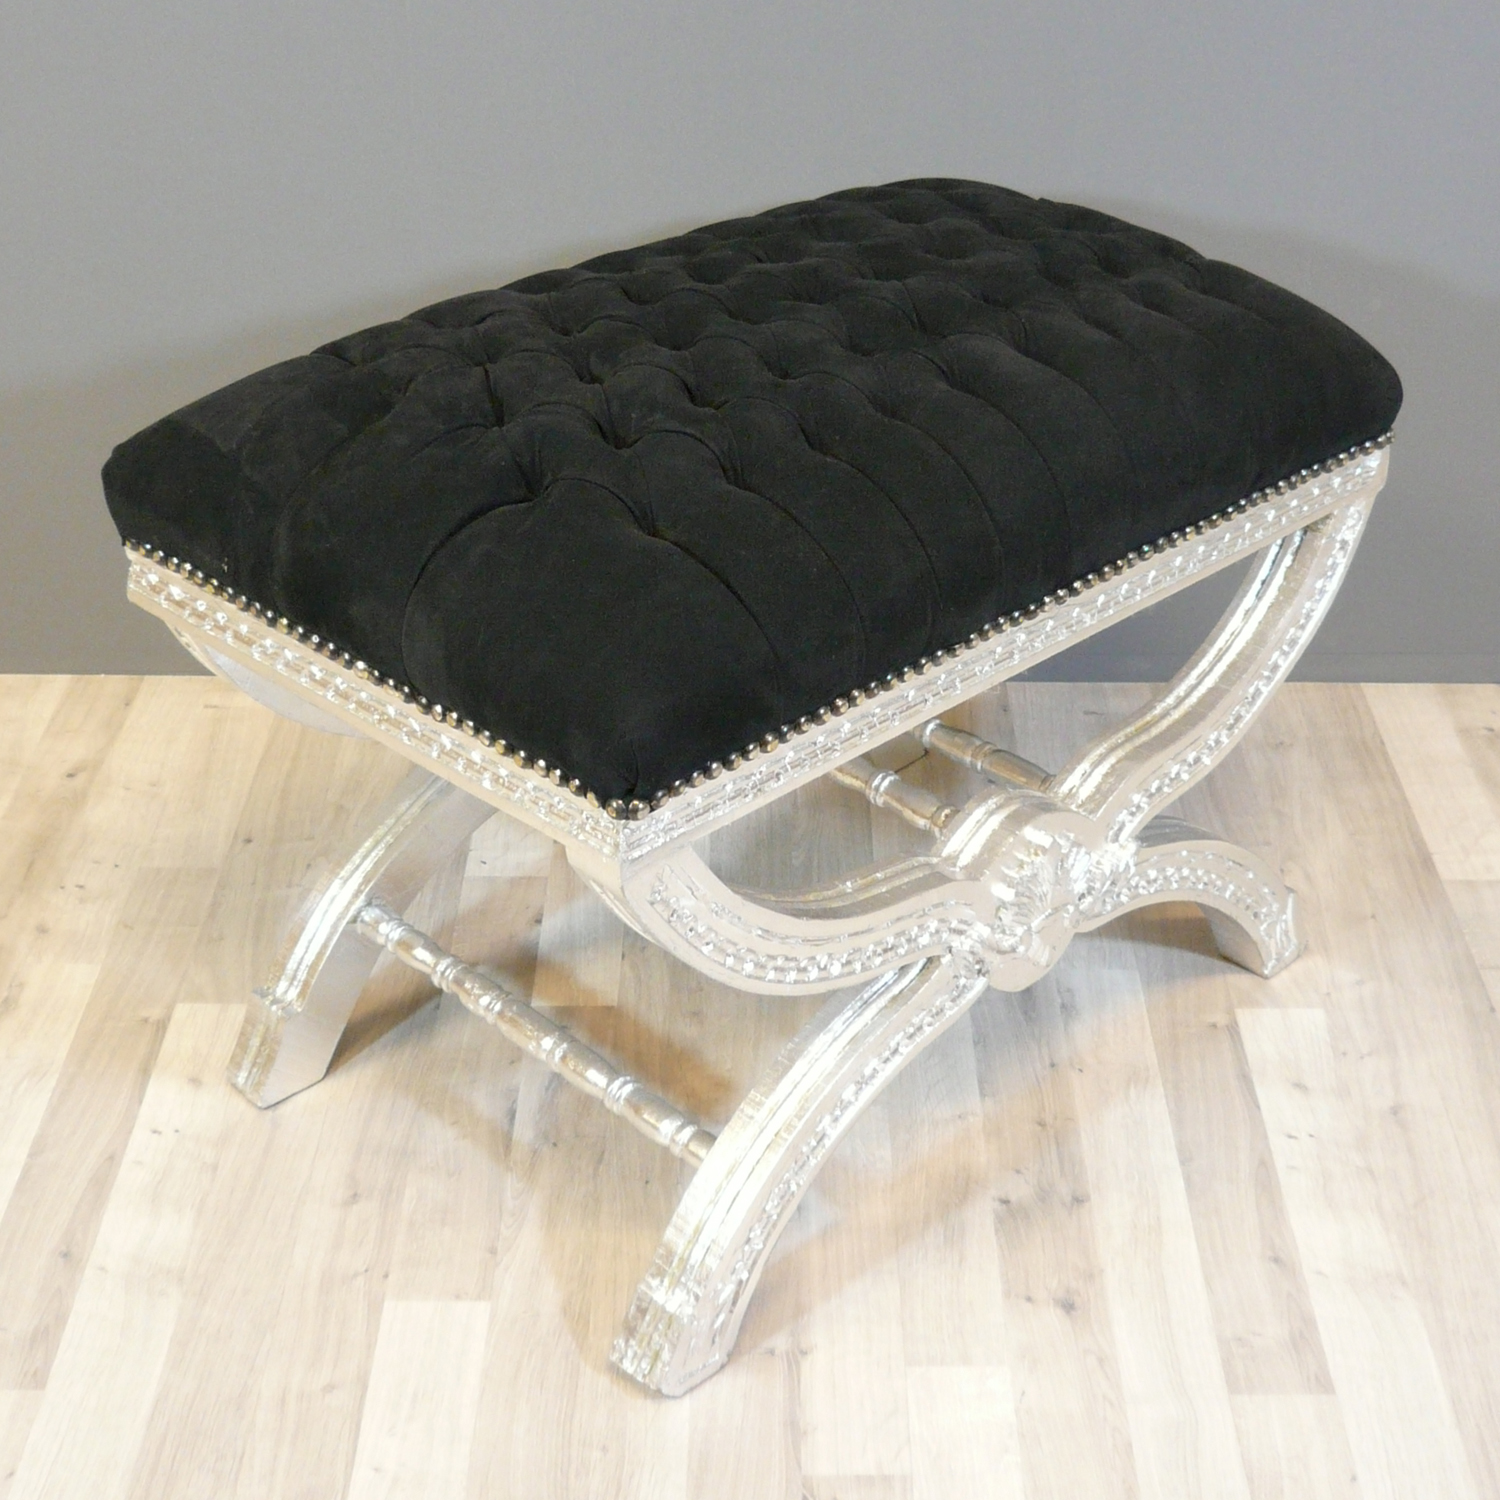 pouf baroque noir capitonn canap baroque chaise baroque. Black Bedroom Furniture Sets. Home Design Ideas